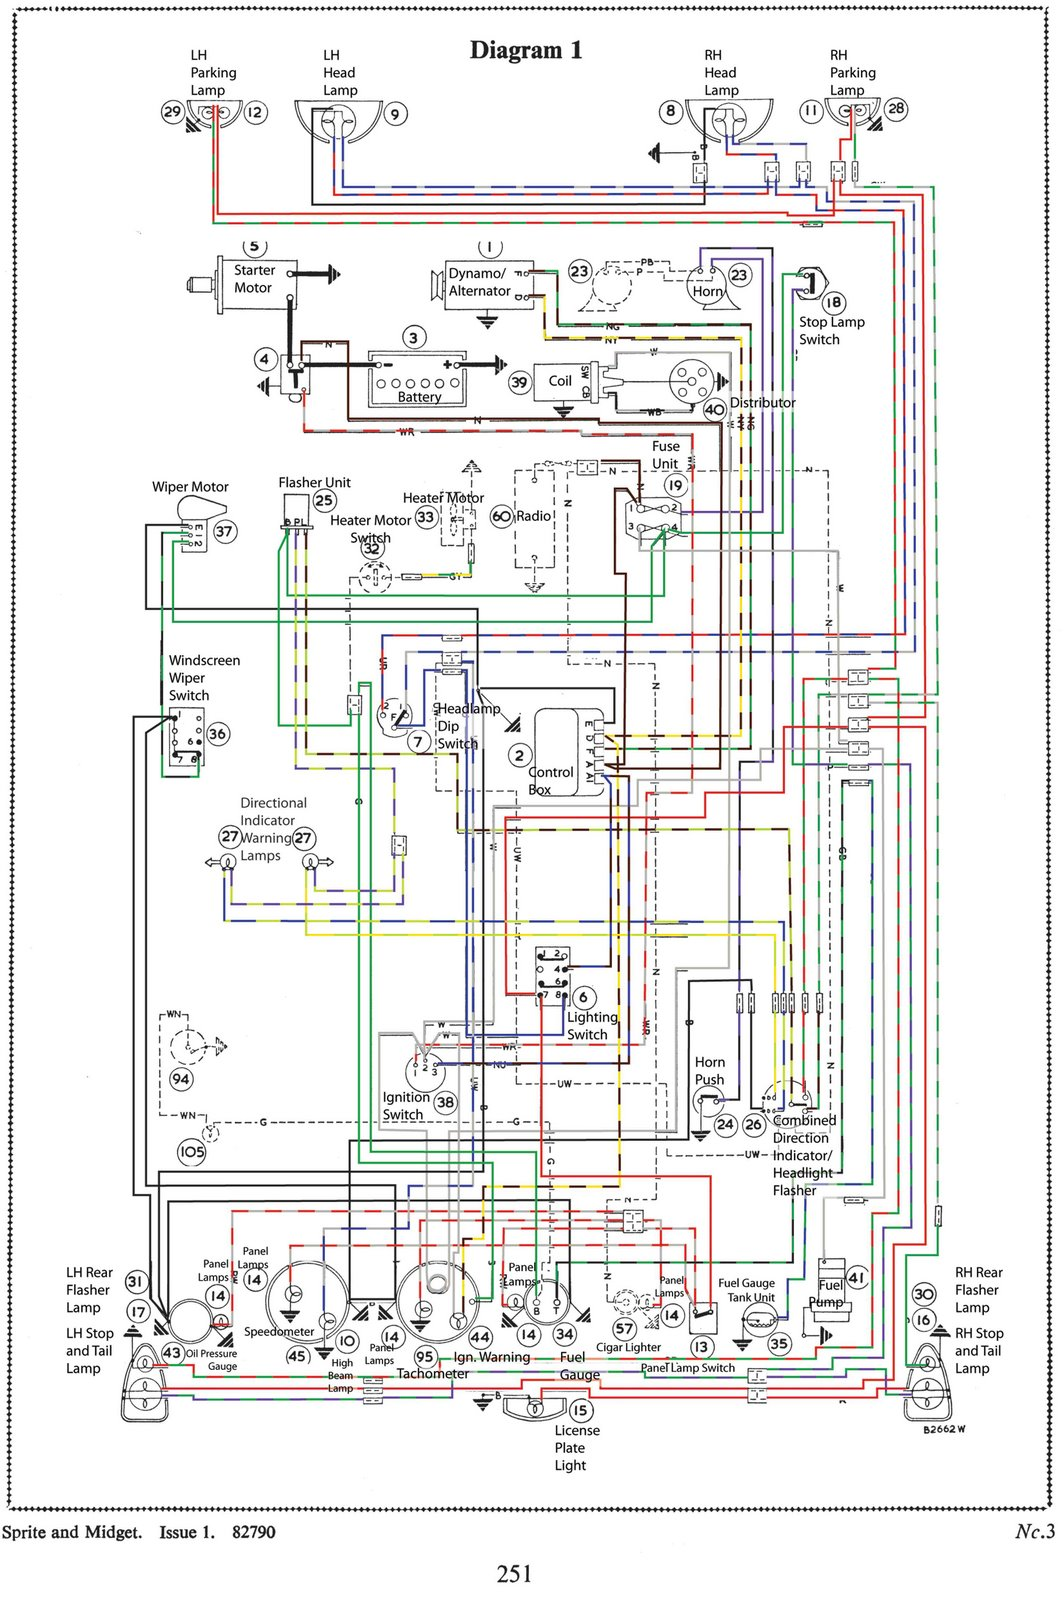 hight resolution of 1975 mgb fuse box search for wiring diagrams u2022 rh stephenpoon co 1980 mgb fuse box